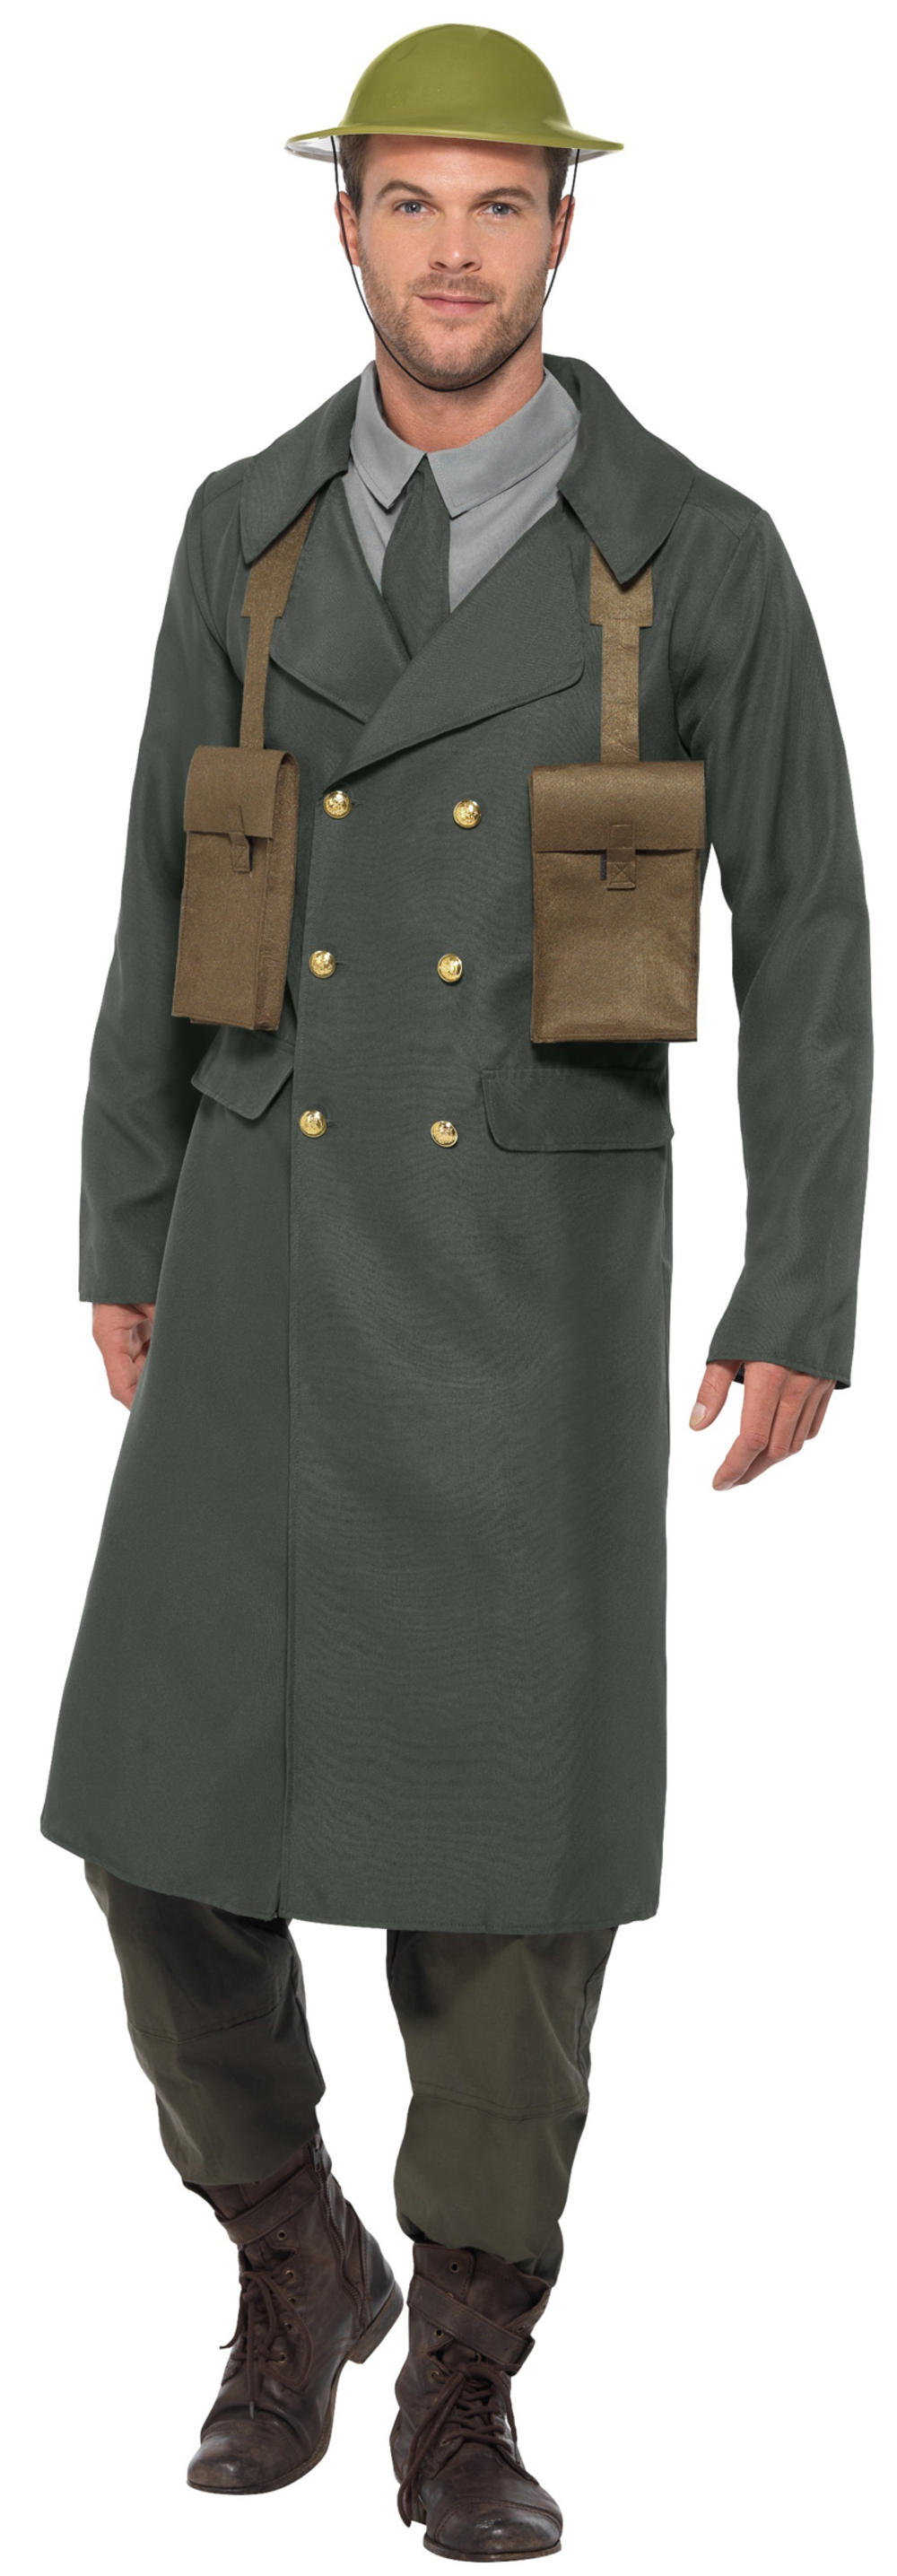 WW2 British Officer Mens Fancy Dress Military Army Uniform Adults Costume Outfit